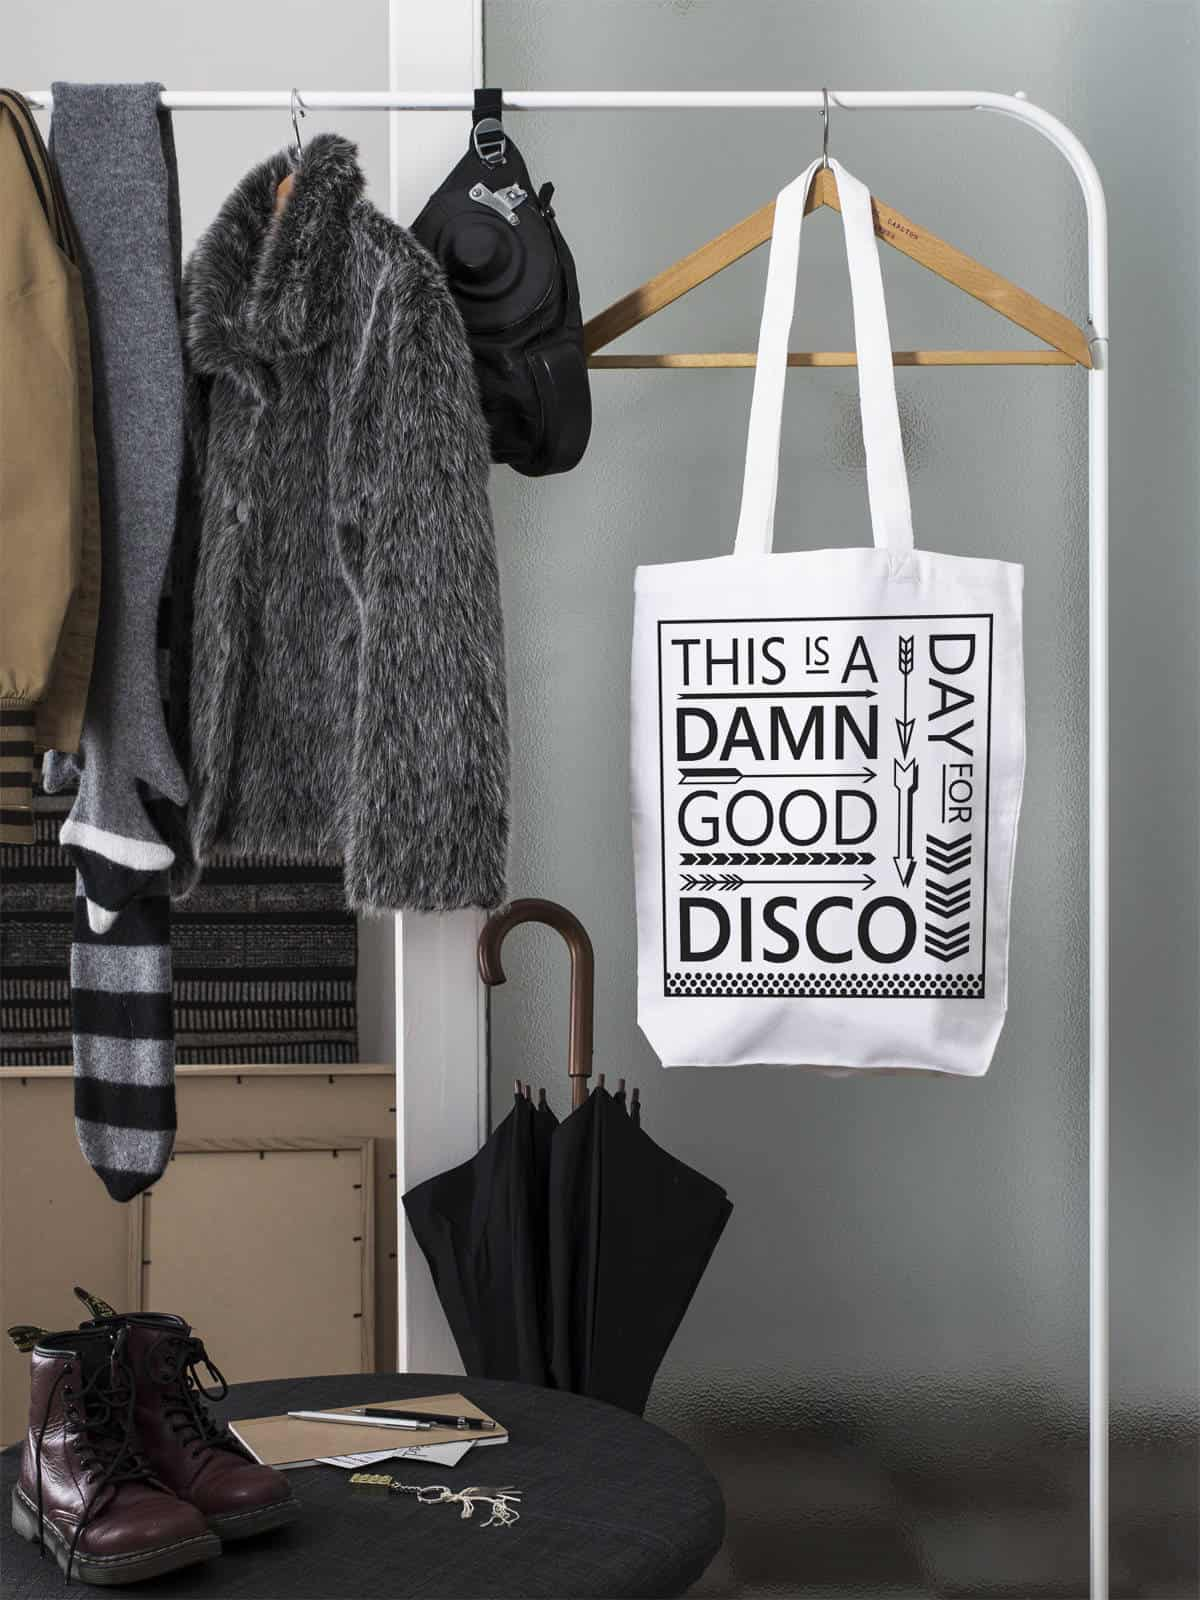 Win a 'This is a Damn Good Day for a Disco' tote bag